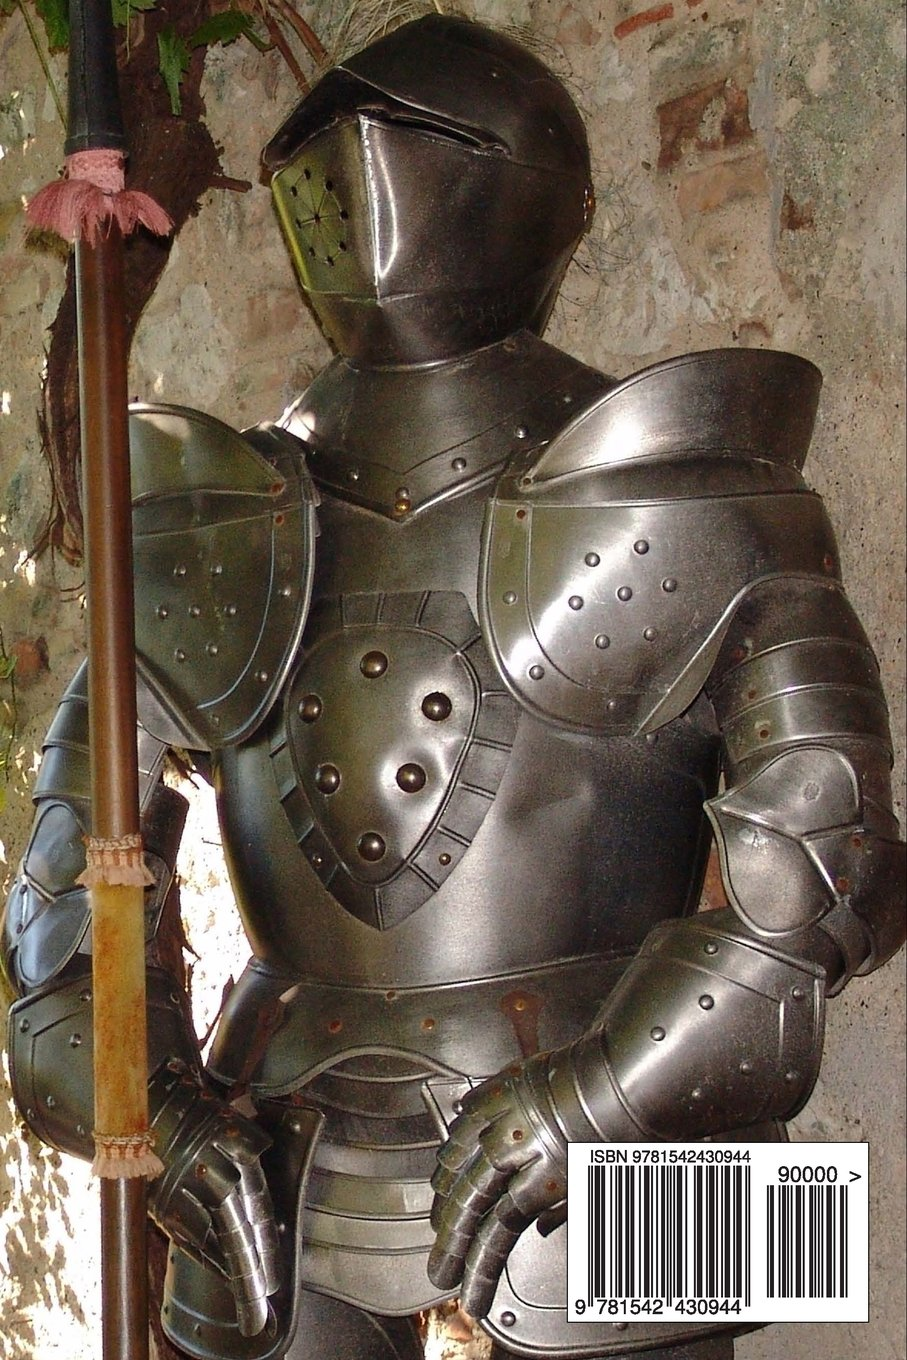 A Battle Ready Medieval Crusader with Armor and Helmet